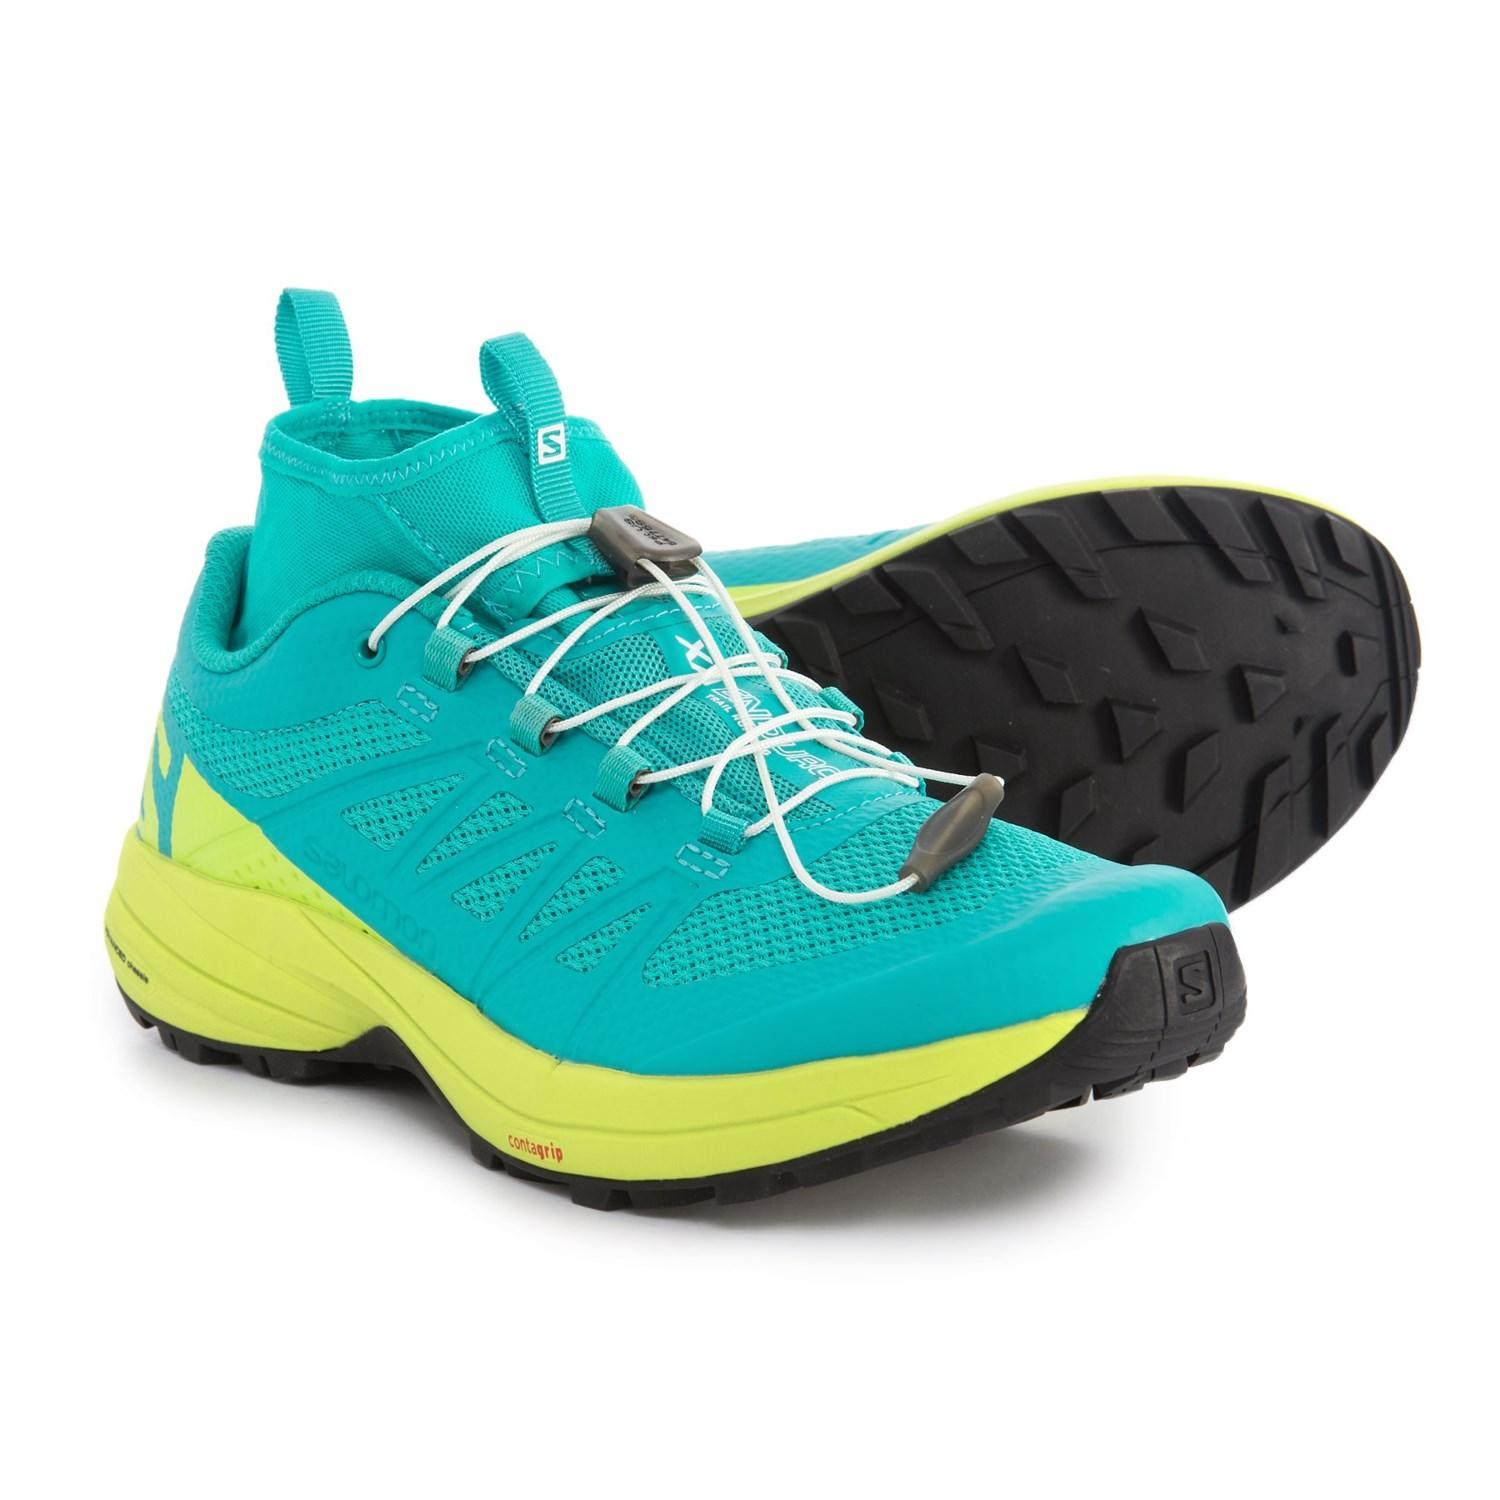 details for new lower prices best choice Women's Xa Enduro Trail Running Shoes